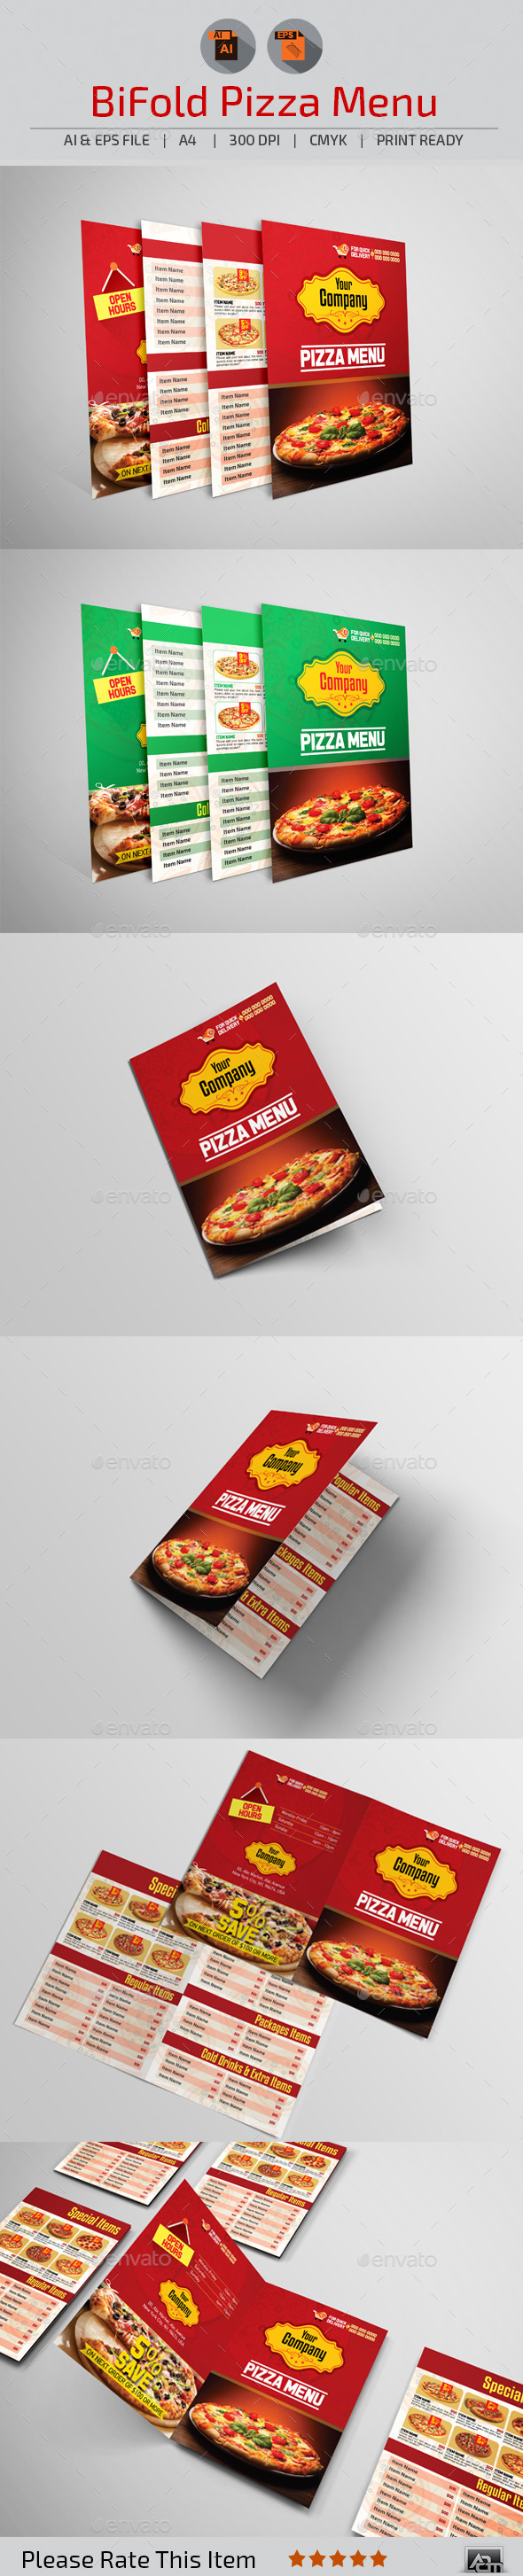 Bi-Fold Pizza Menu